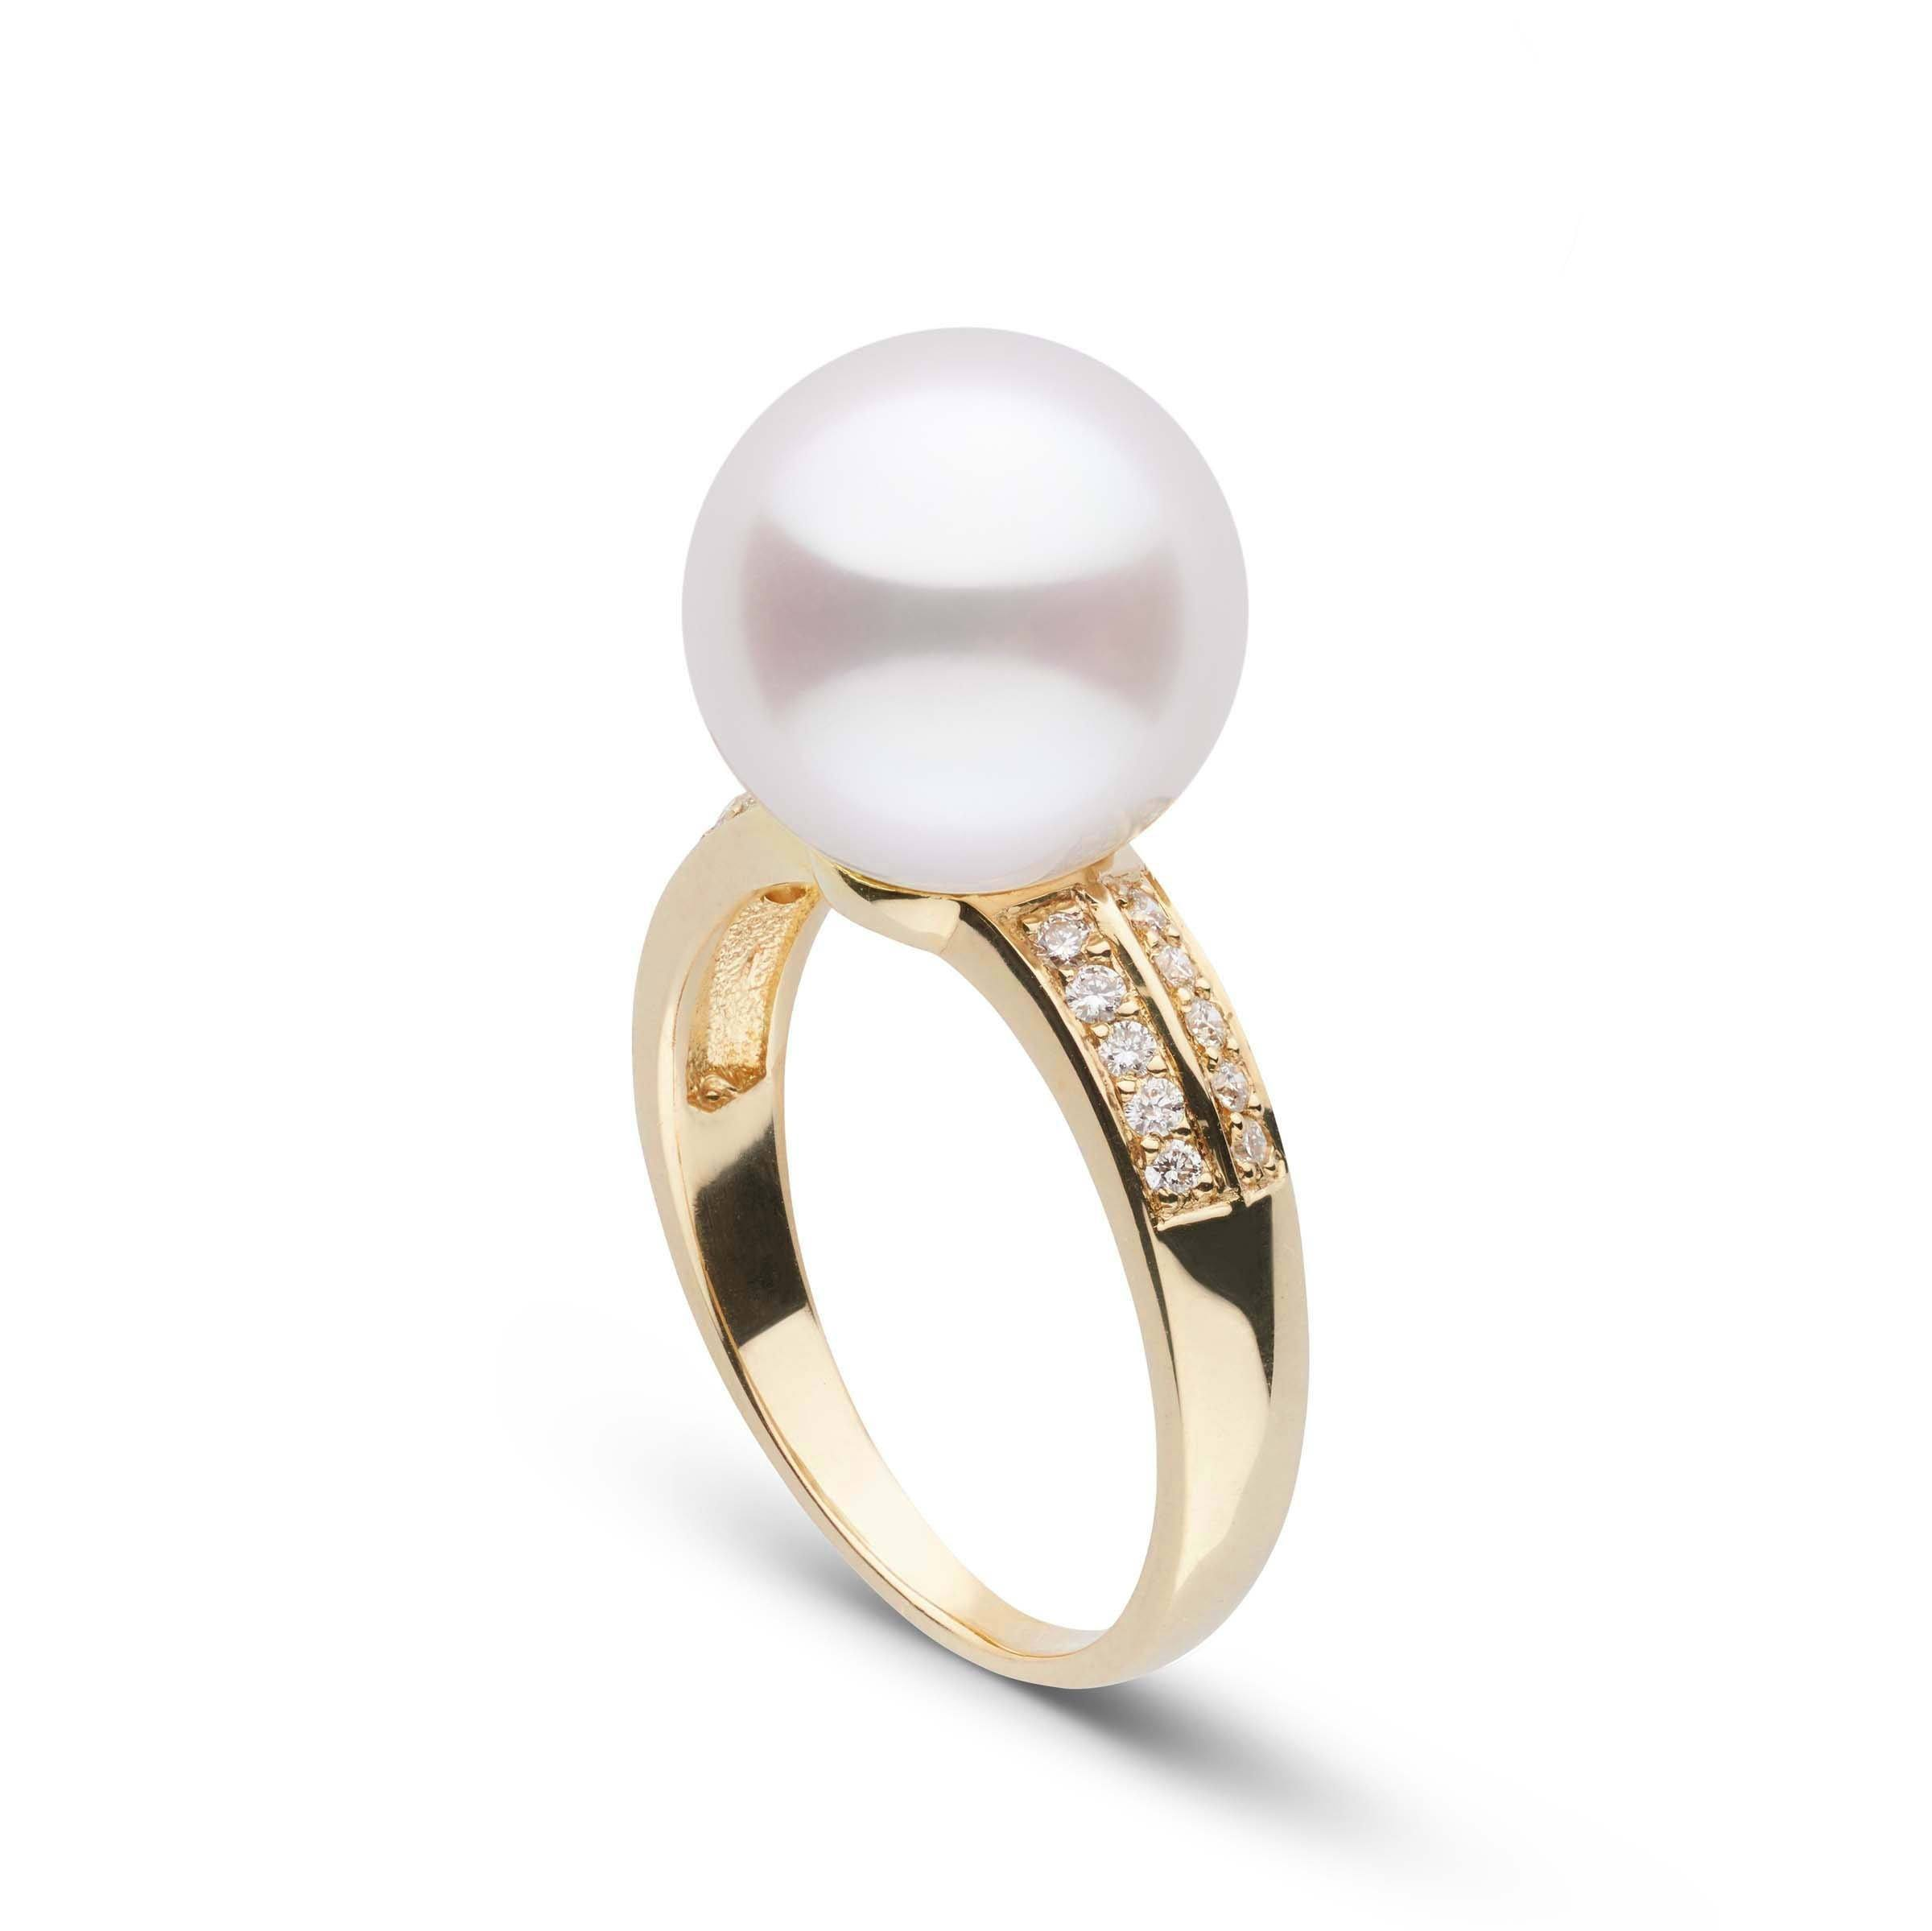 Forever Collection 11-12 mm White South Sea Pearl and Diamond Ring